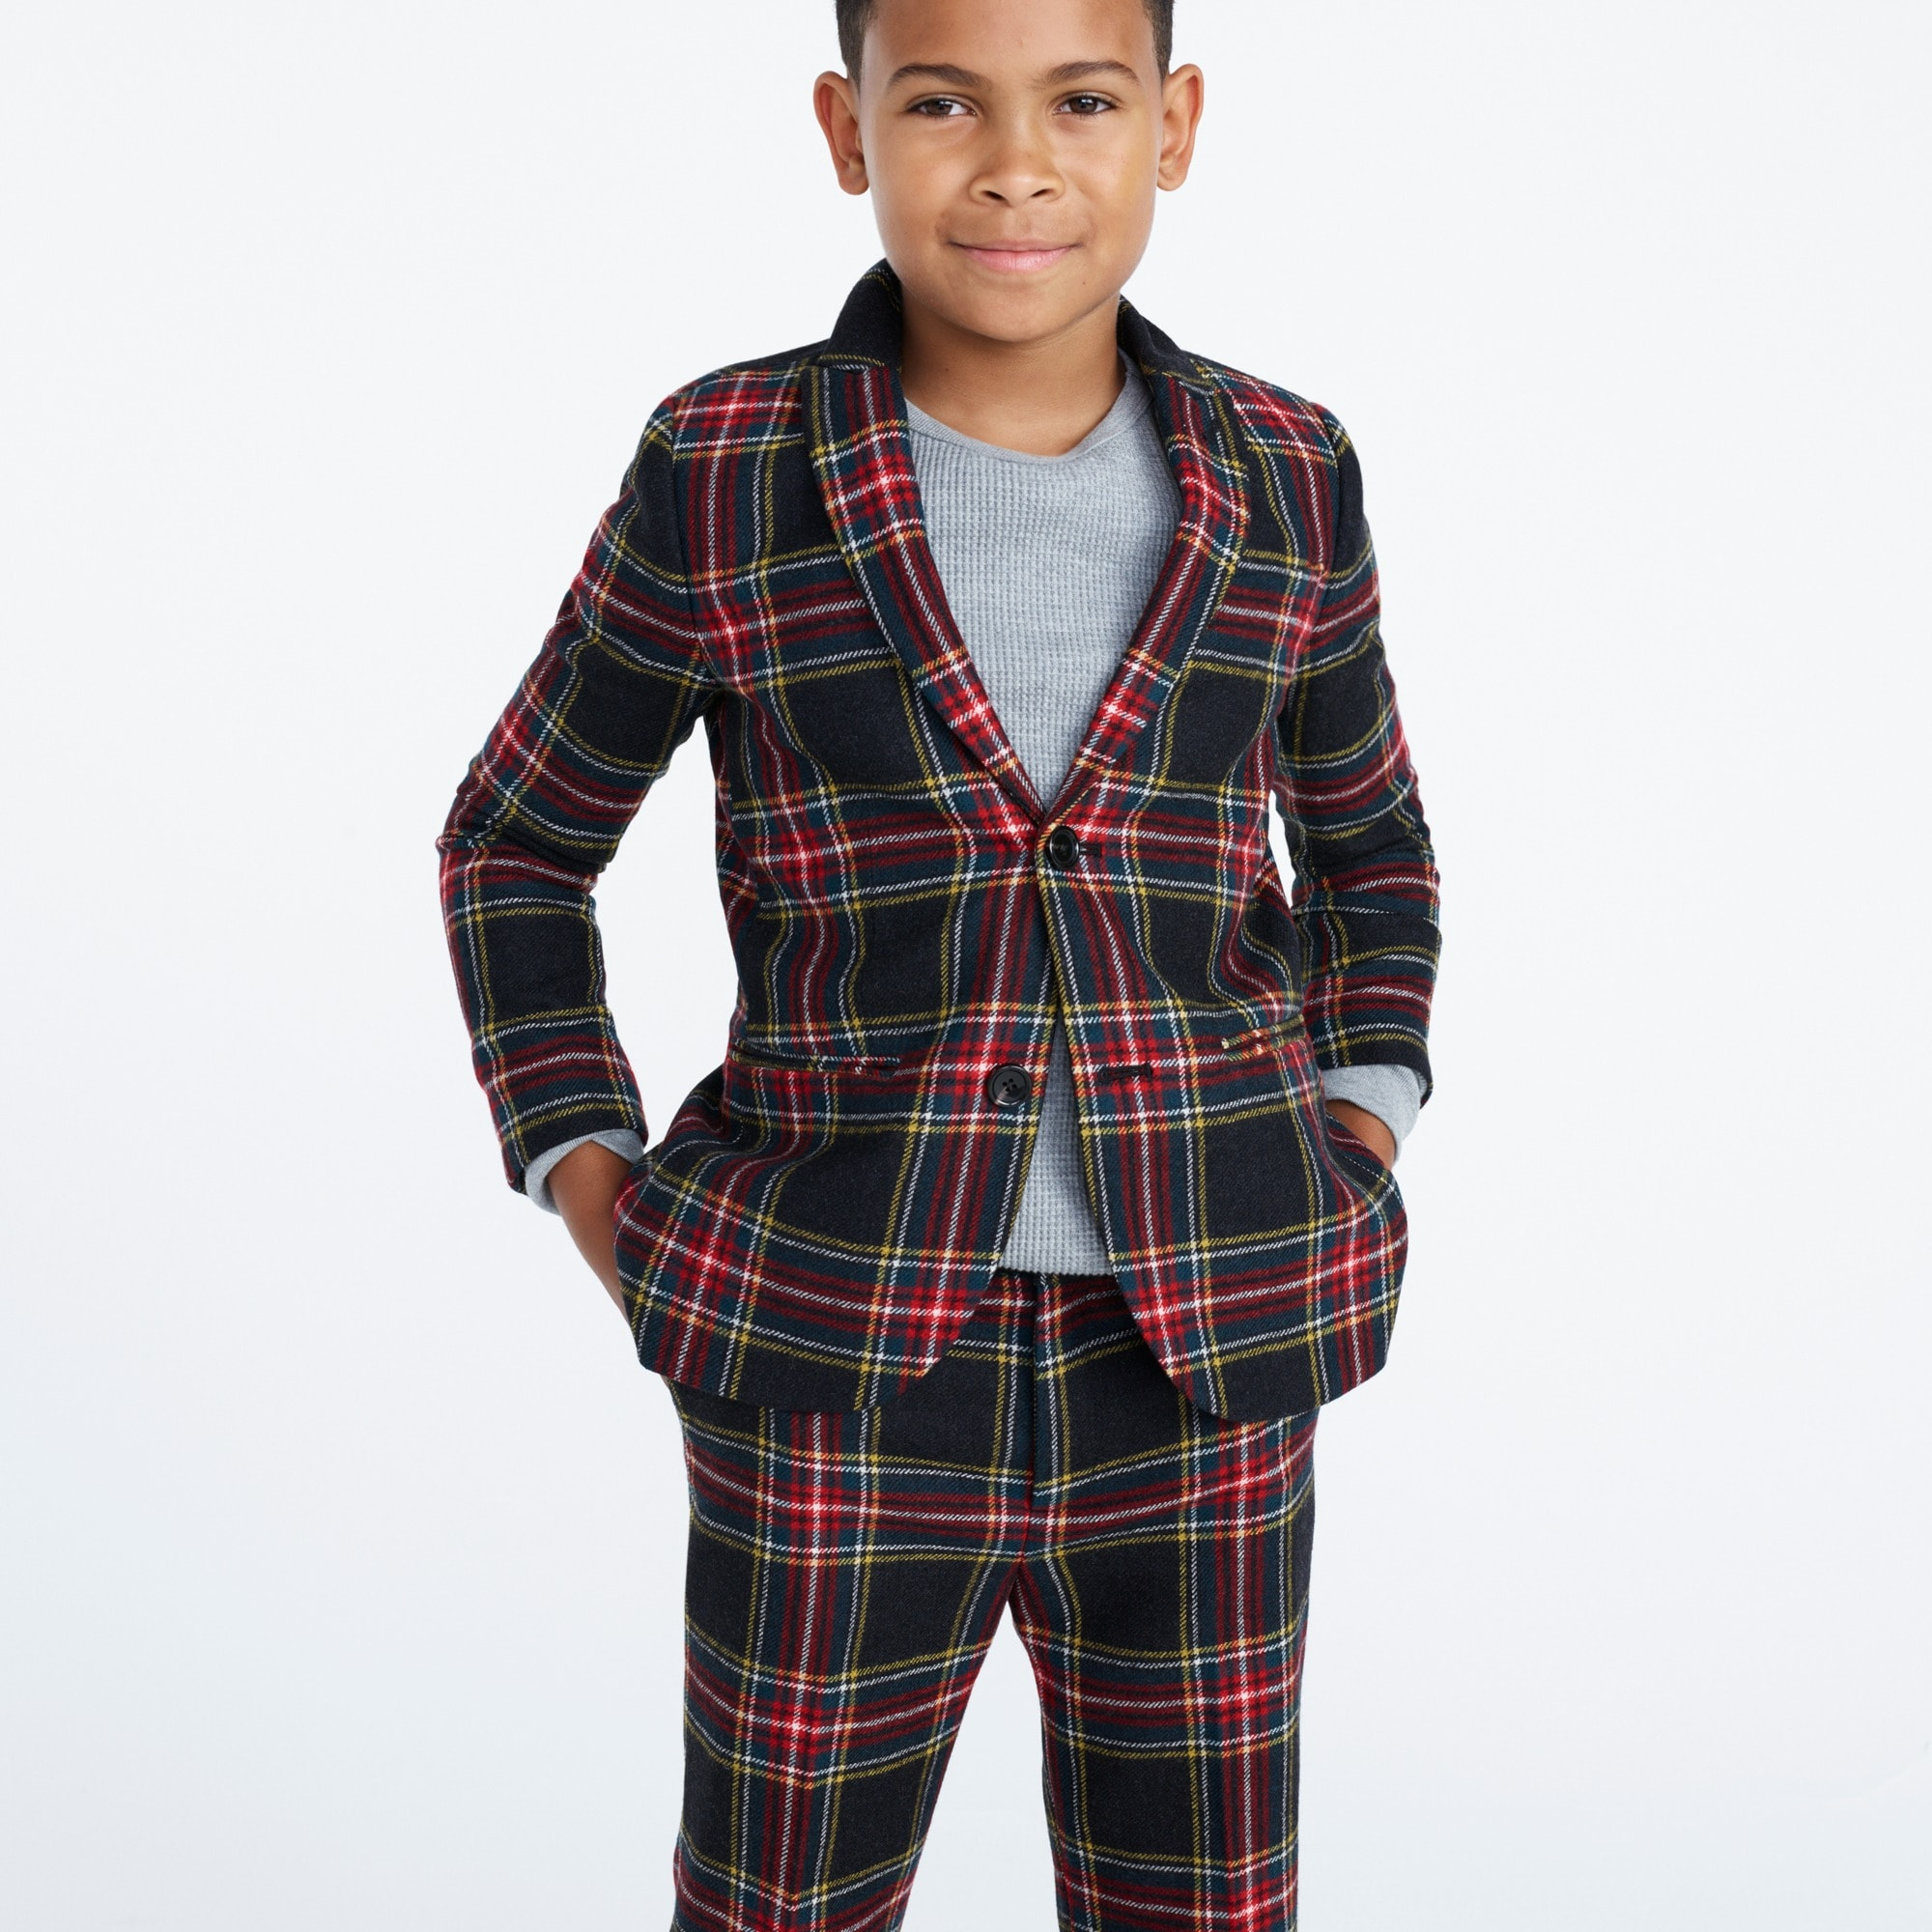 Image 2 for Boys' Ludlow suit jacket in Stewart plaid